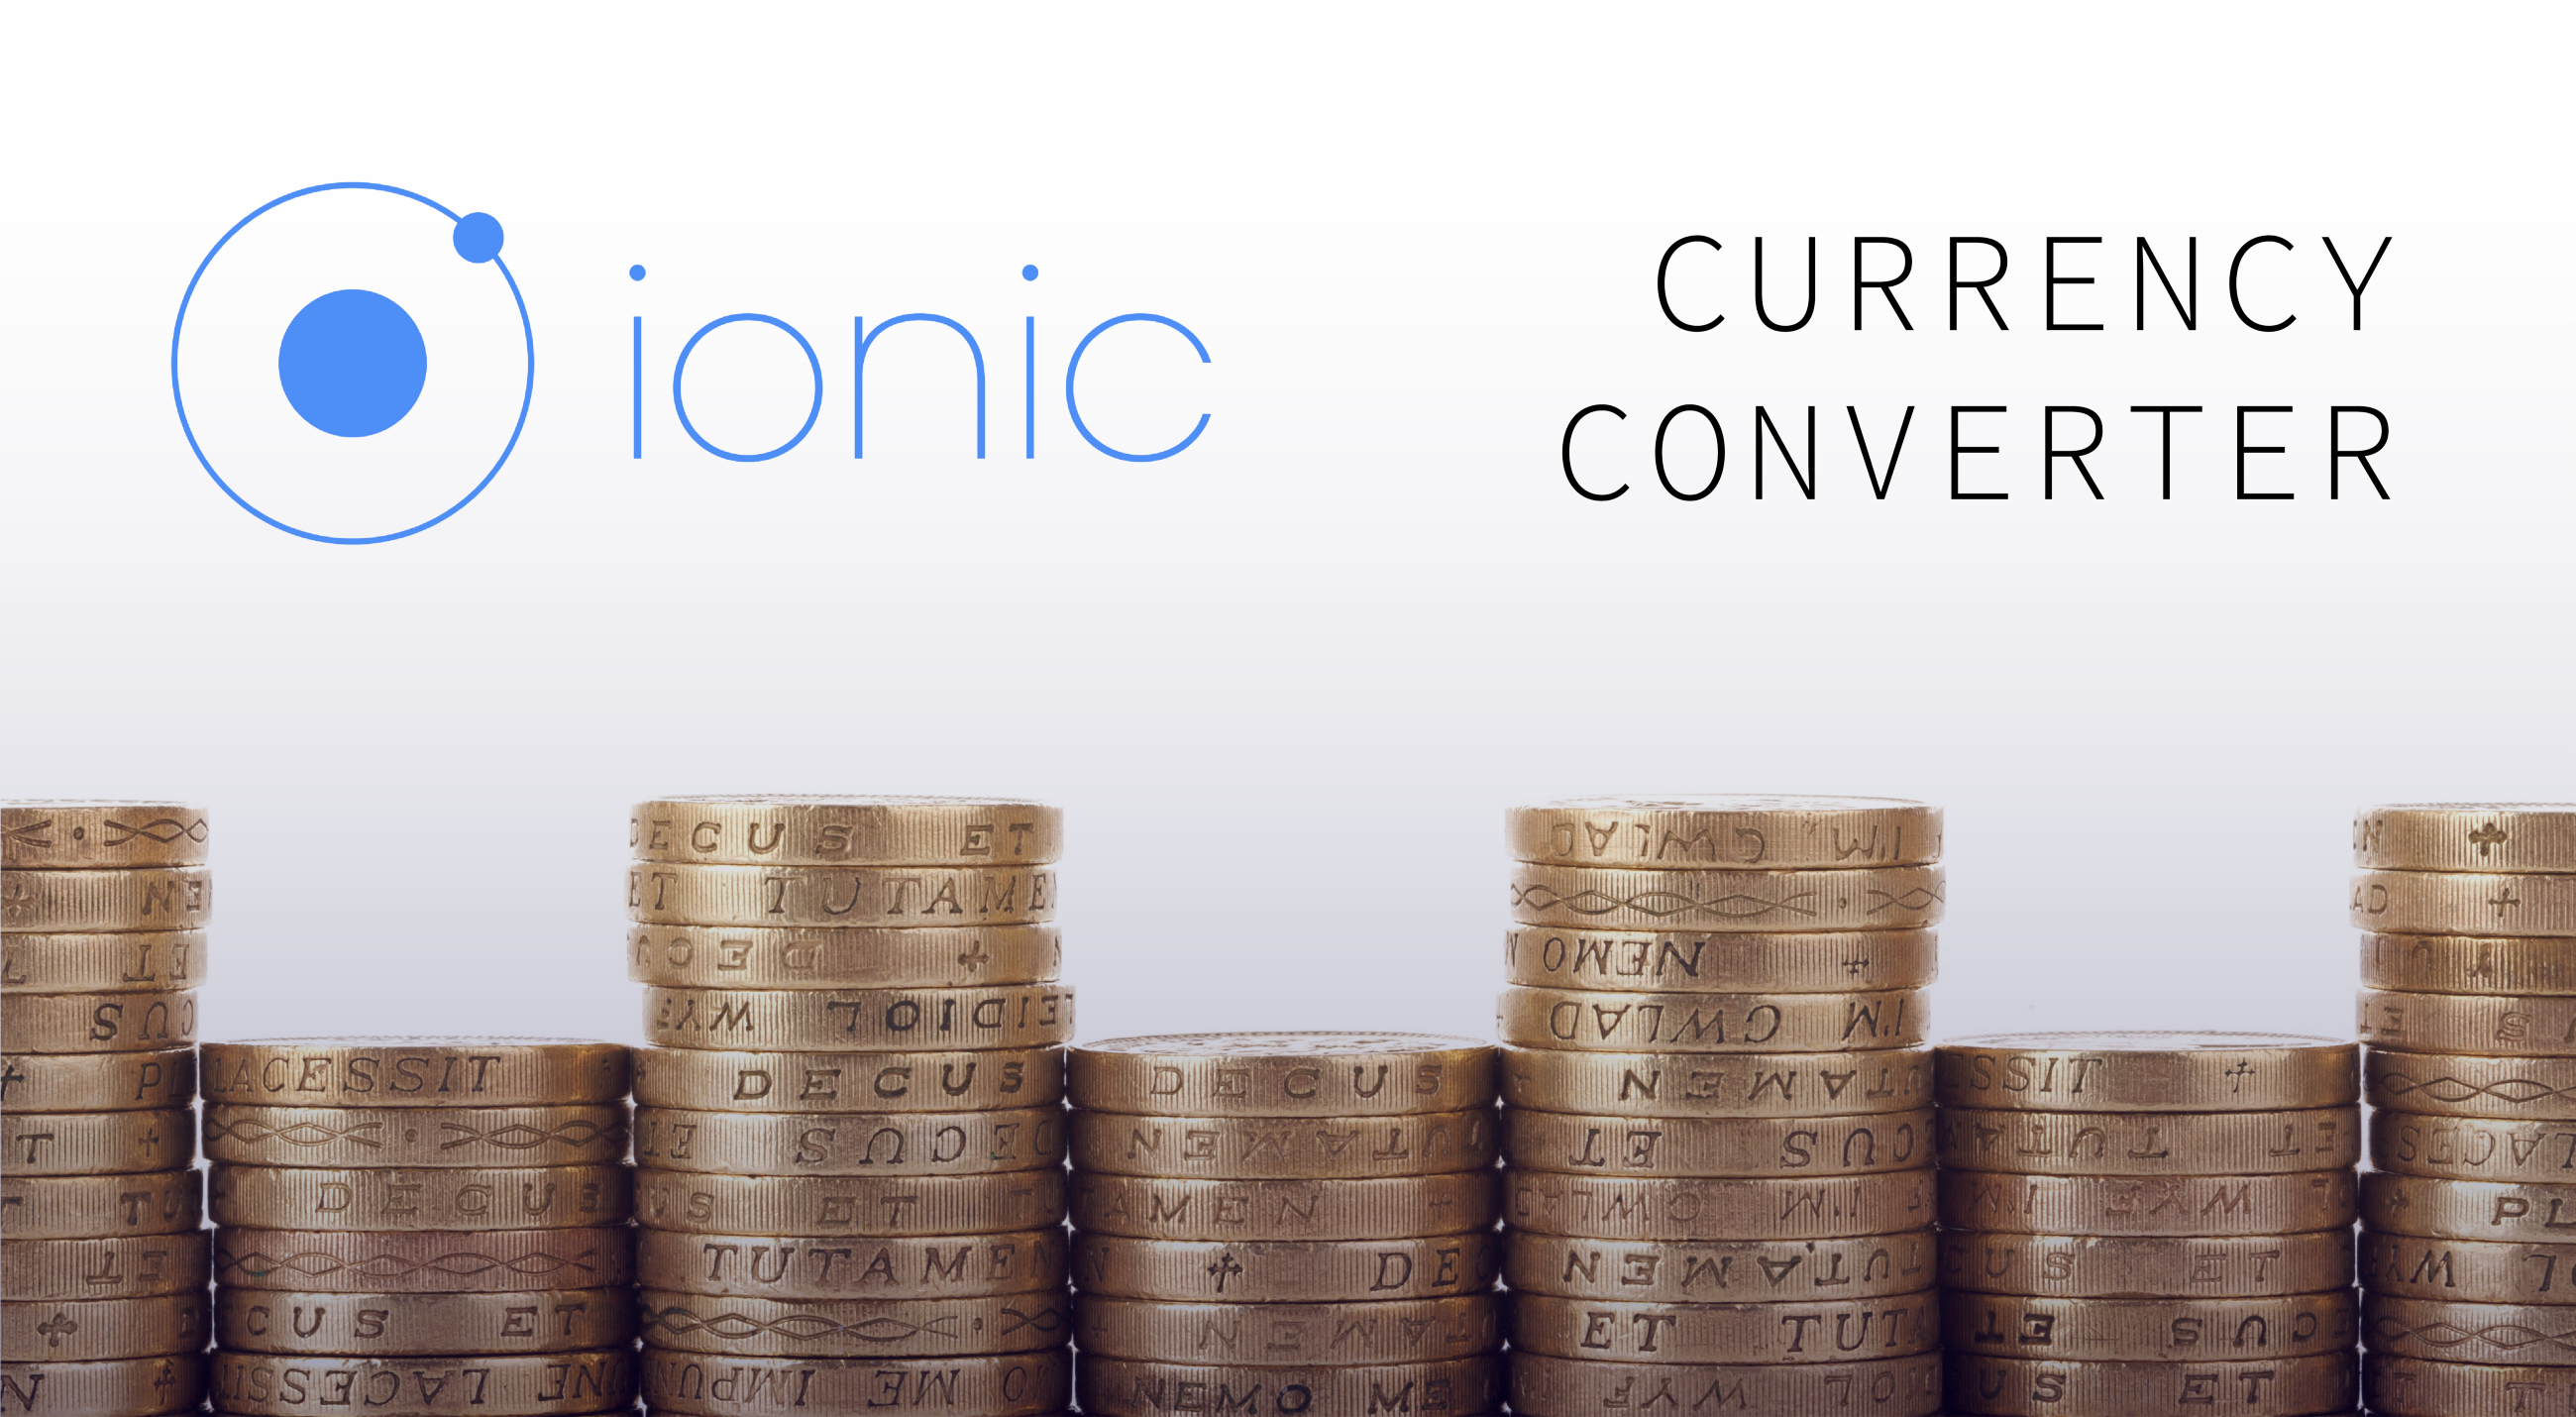 /ionic-currency-converter-8f33d3d76d2d feature image